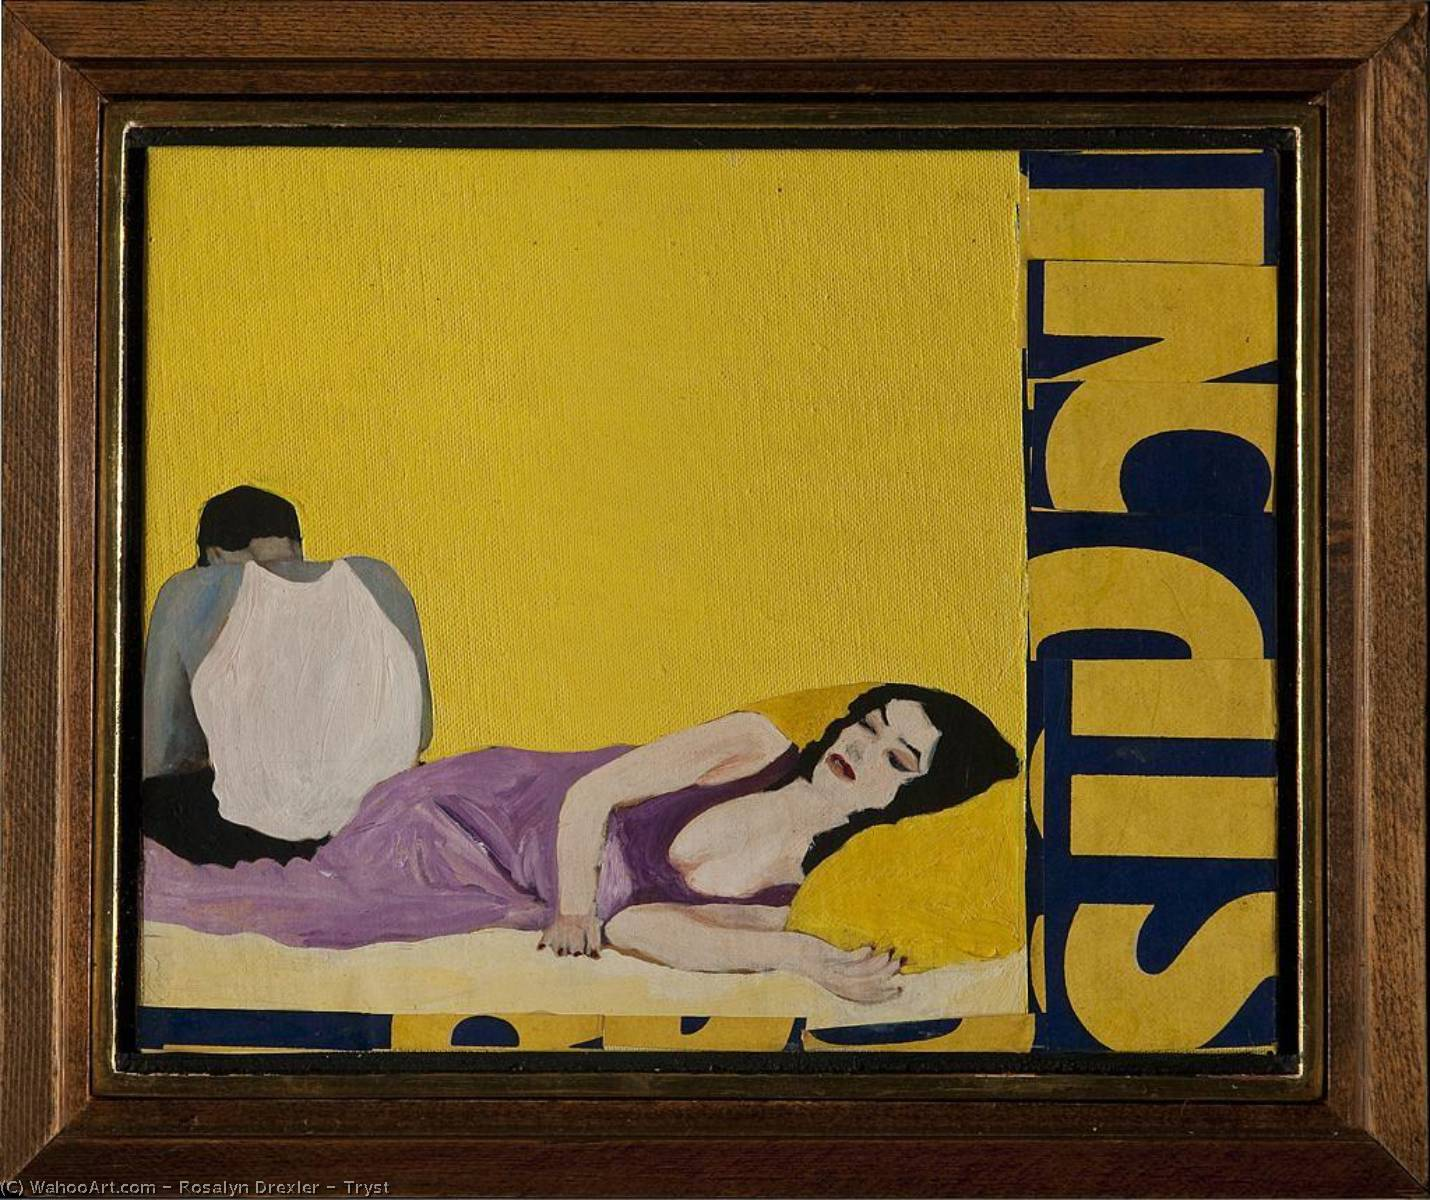 Tryst, Collage by Rosalyn Drexler